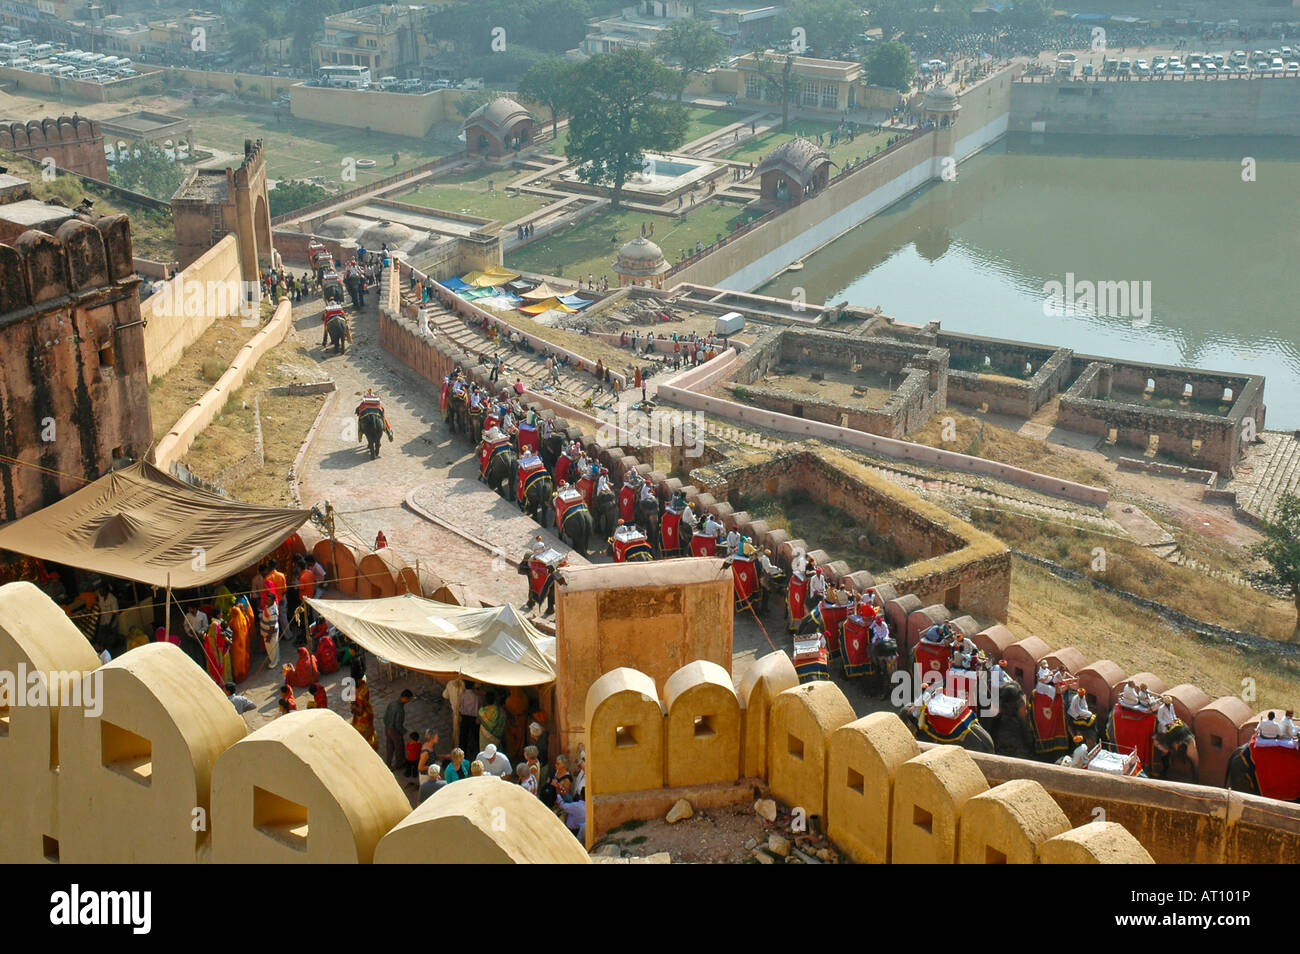 Horizontal Aerial View Of A Procession Working Elephants In Queue At The Entrance To Amber Palace Near Jaipur